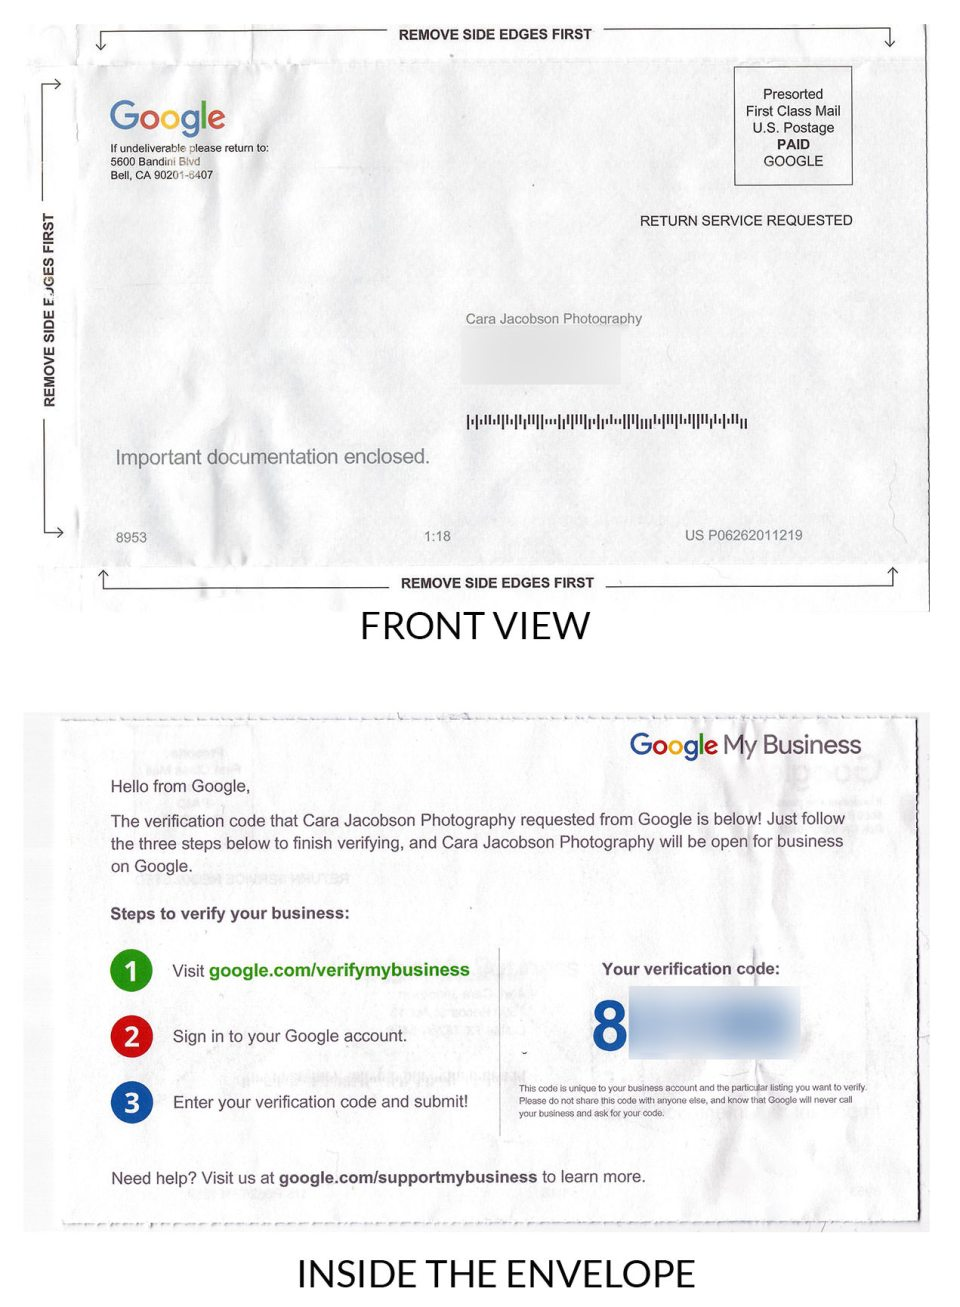 A scan of the actual envelope Google My Business (GMB) verification team will send you. Keep an eye out for this in the mail - it is received within 5 days.